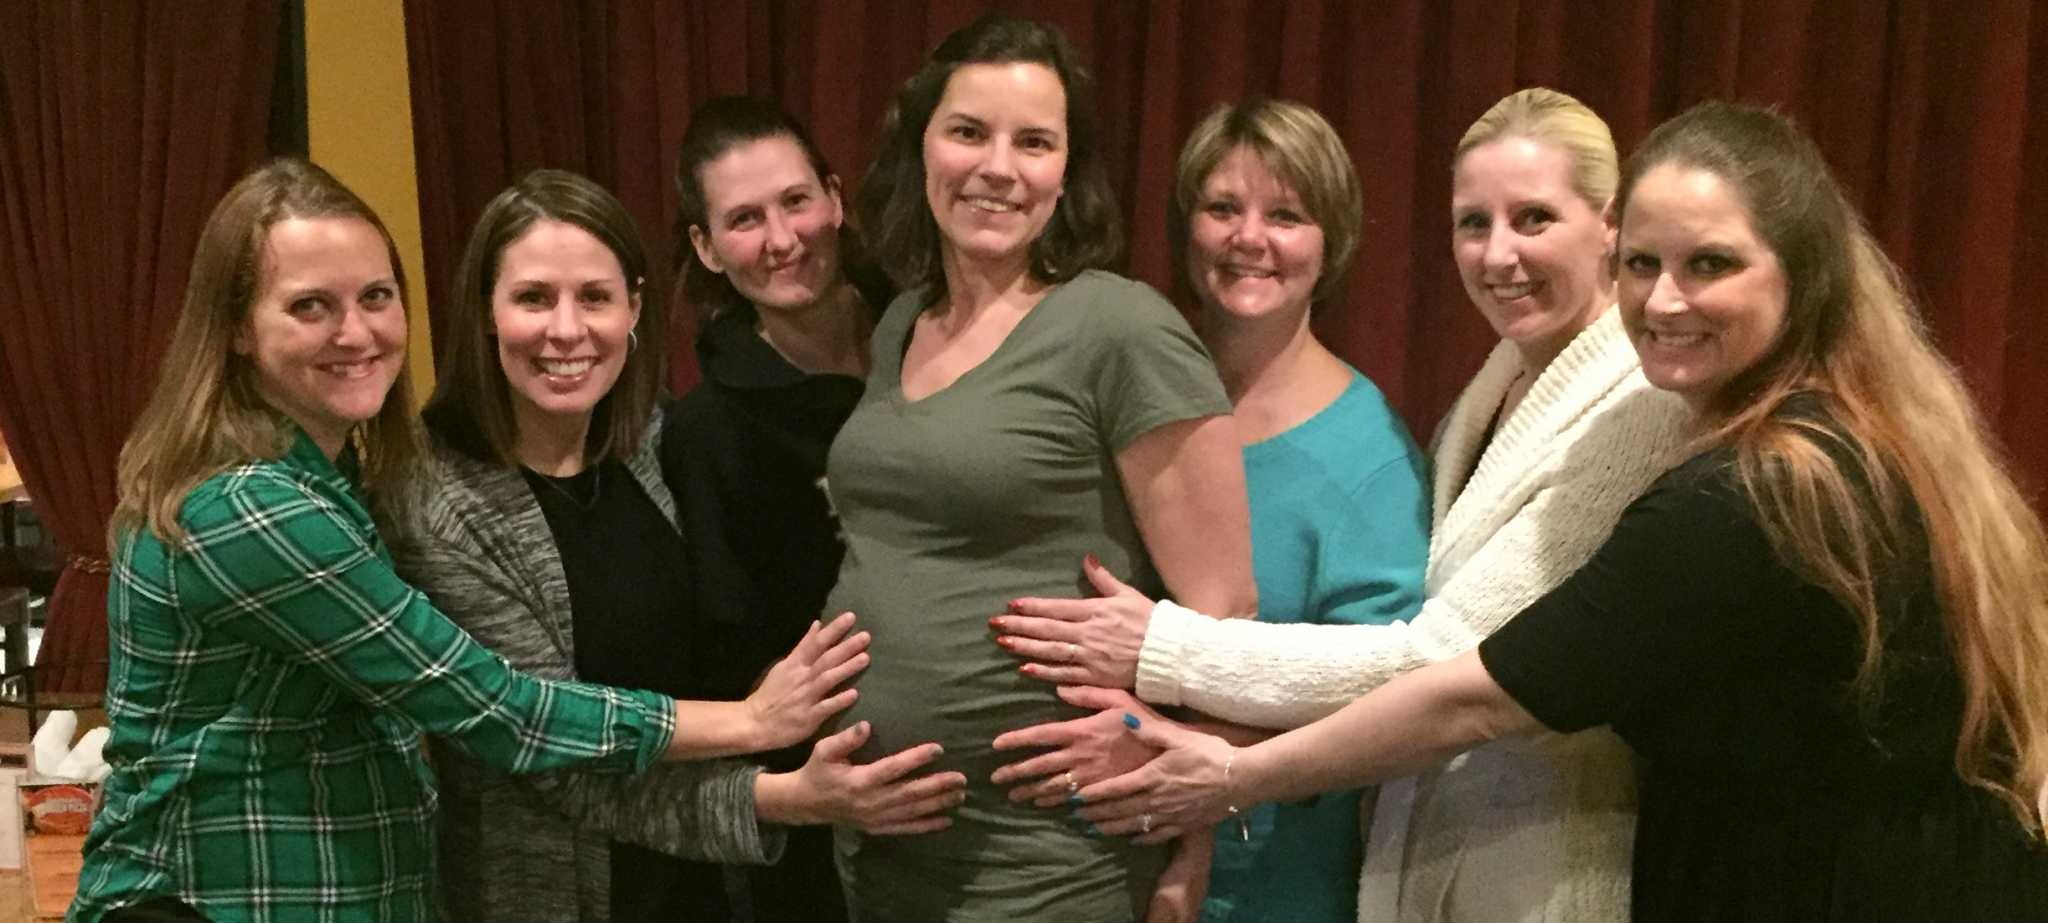 Forum on this topic: How to Become a Surrogate in New , how-to-become-a-surrogate-in-new/